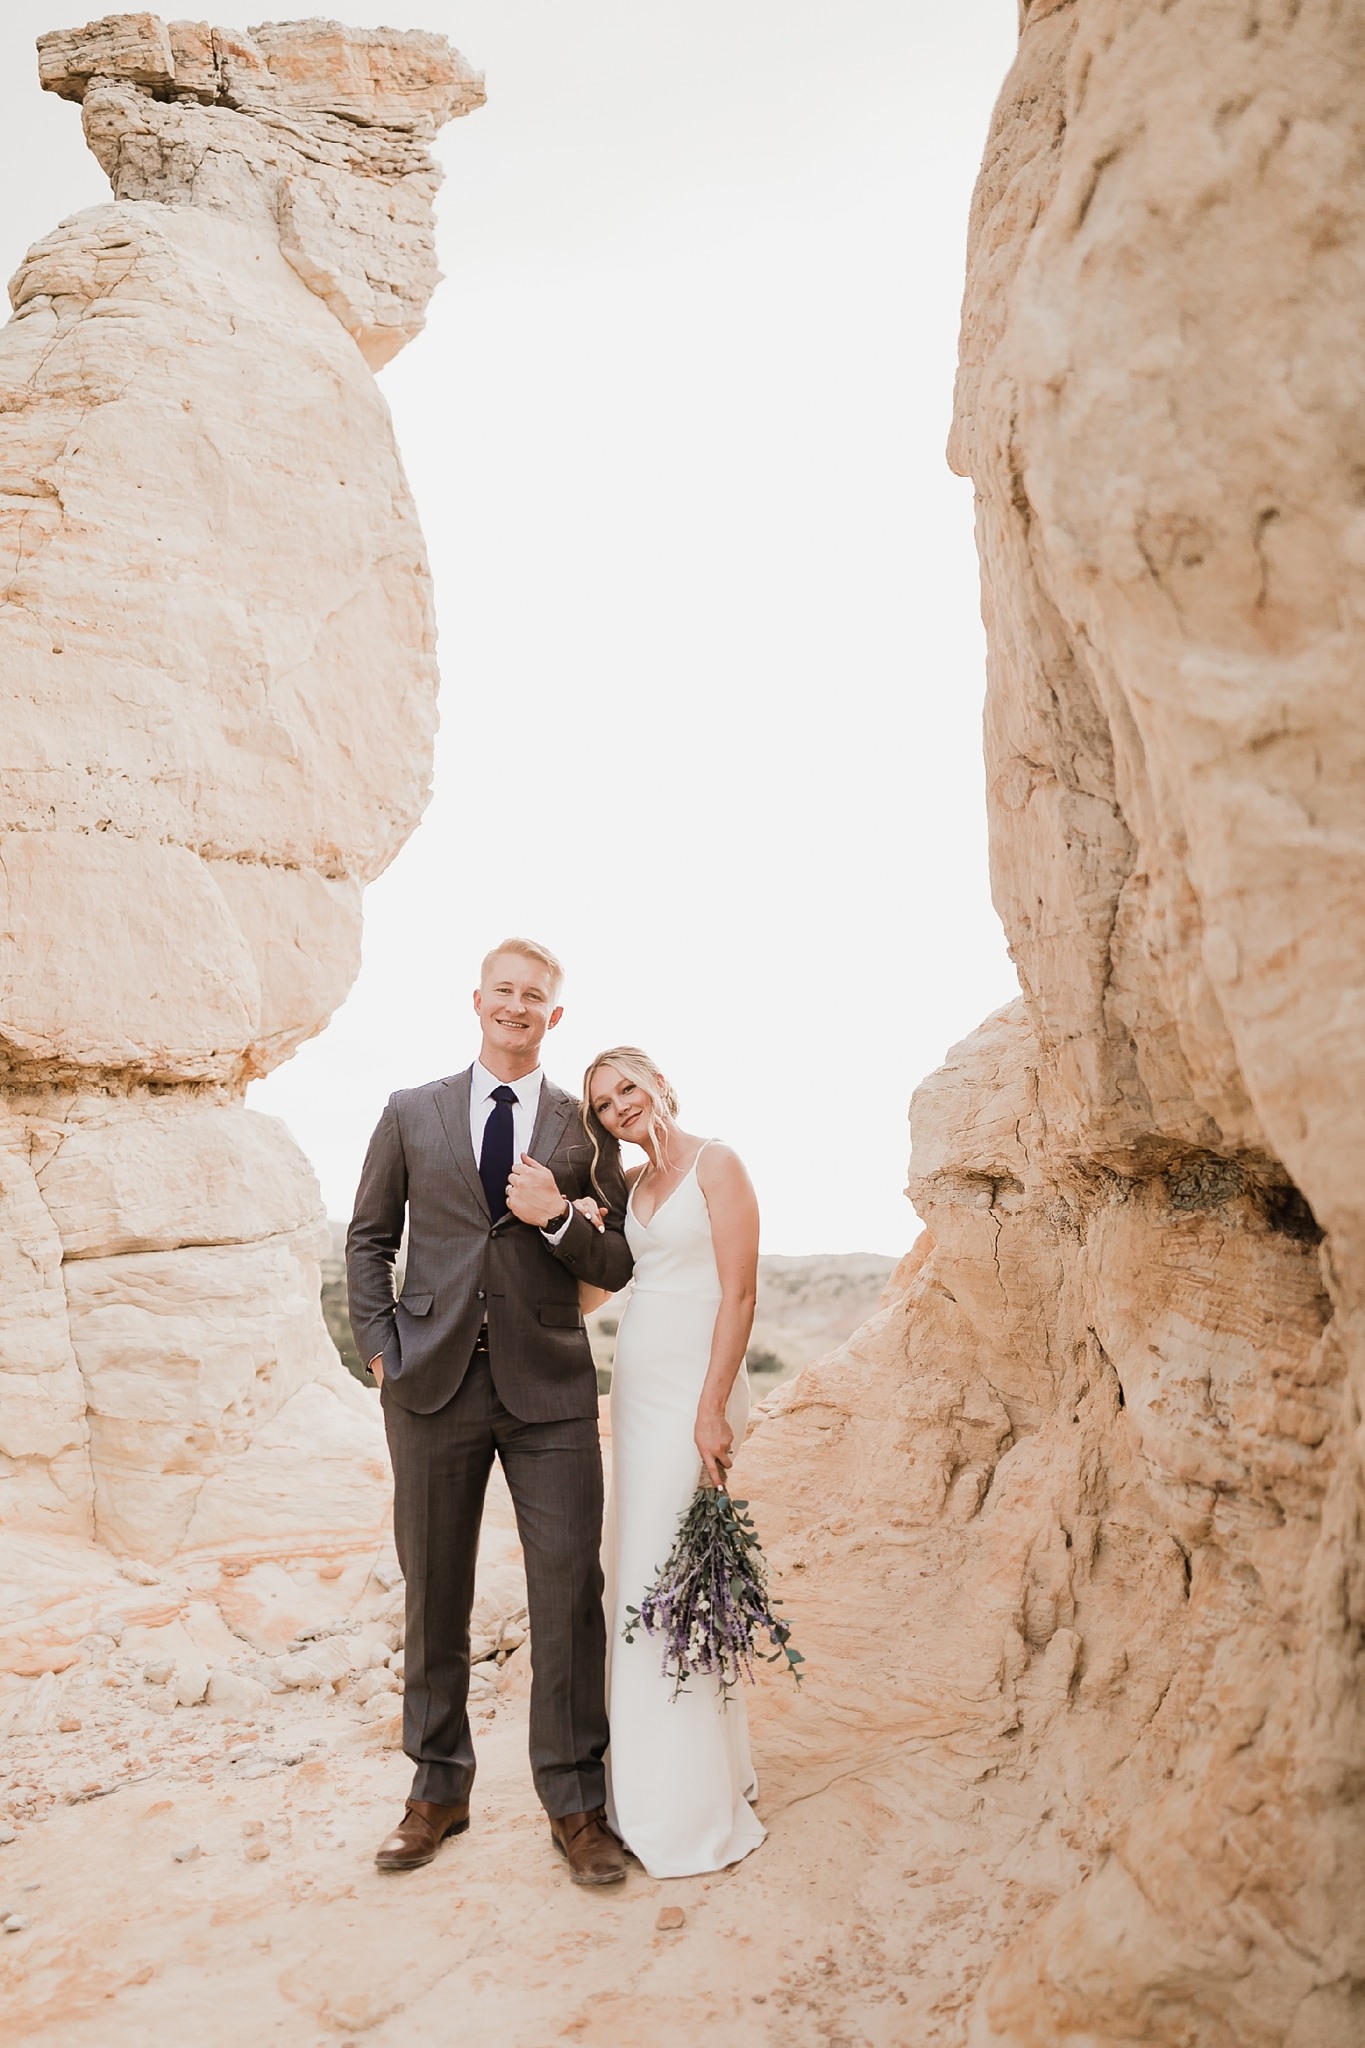 Alicia+lucia+photography+-+albuquerque+wedding+photographer+-+santa+fe+wedding+photography+-+new+mexico+wedding+photographer+-+new+mexico+wedding+-+new+mexico+elopement+-+elopment+-+mountain+elopement_0018.jpg